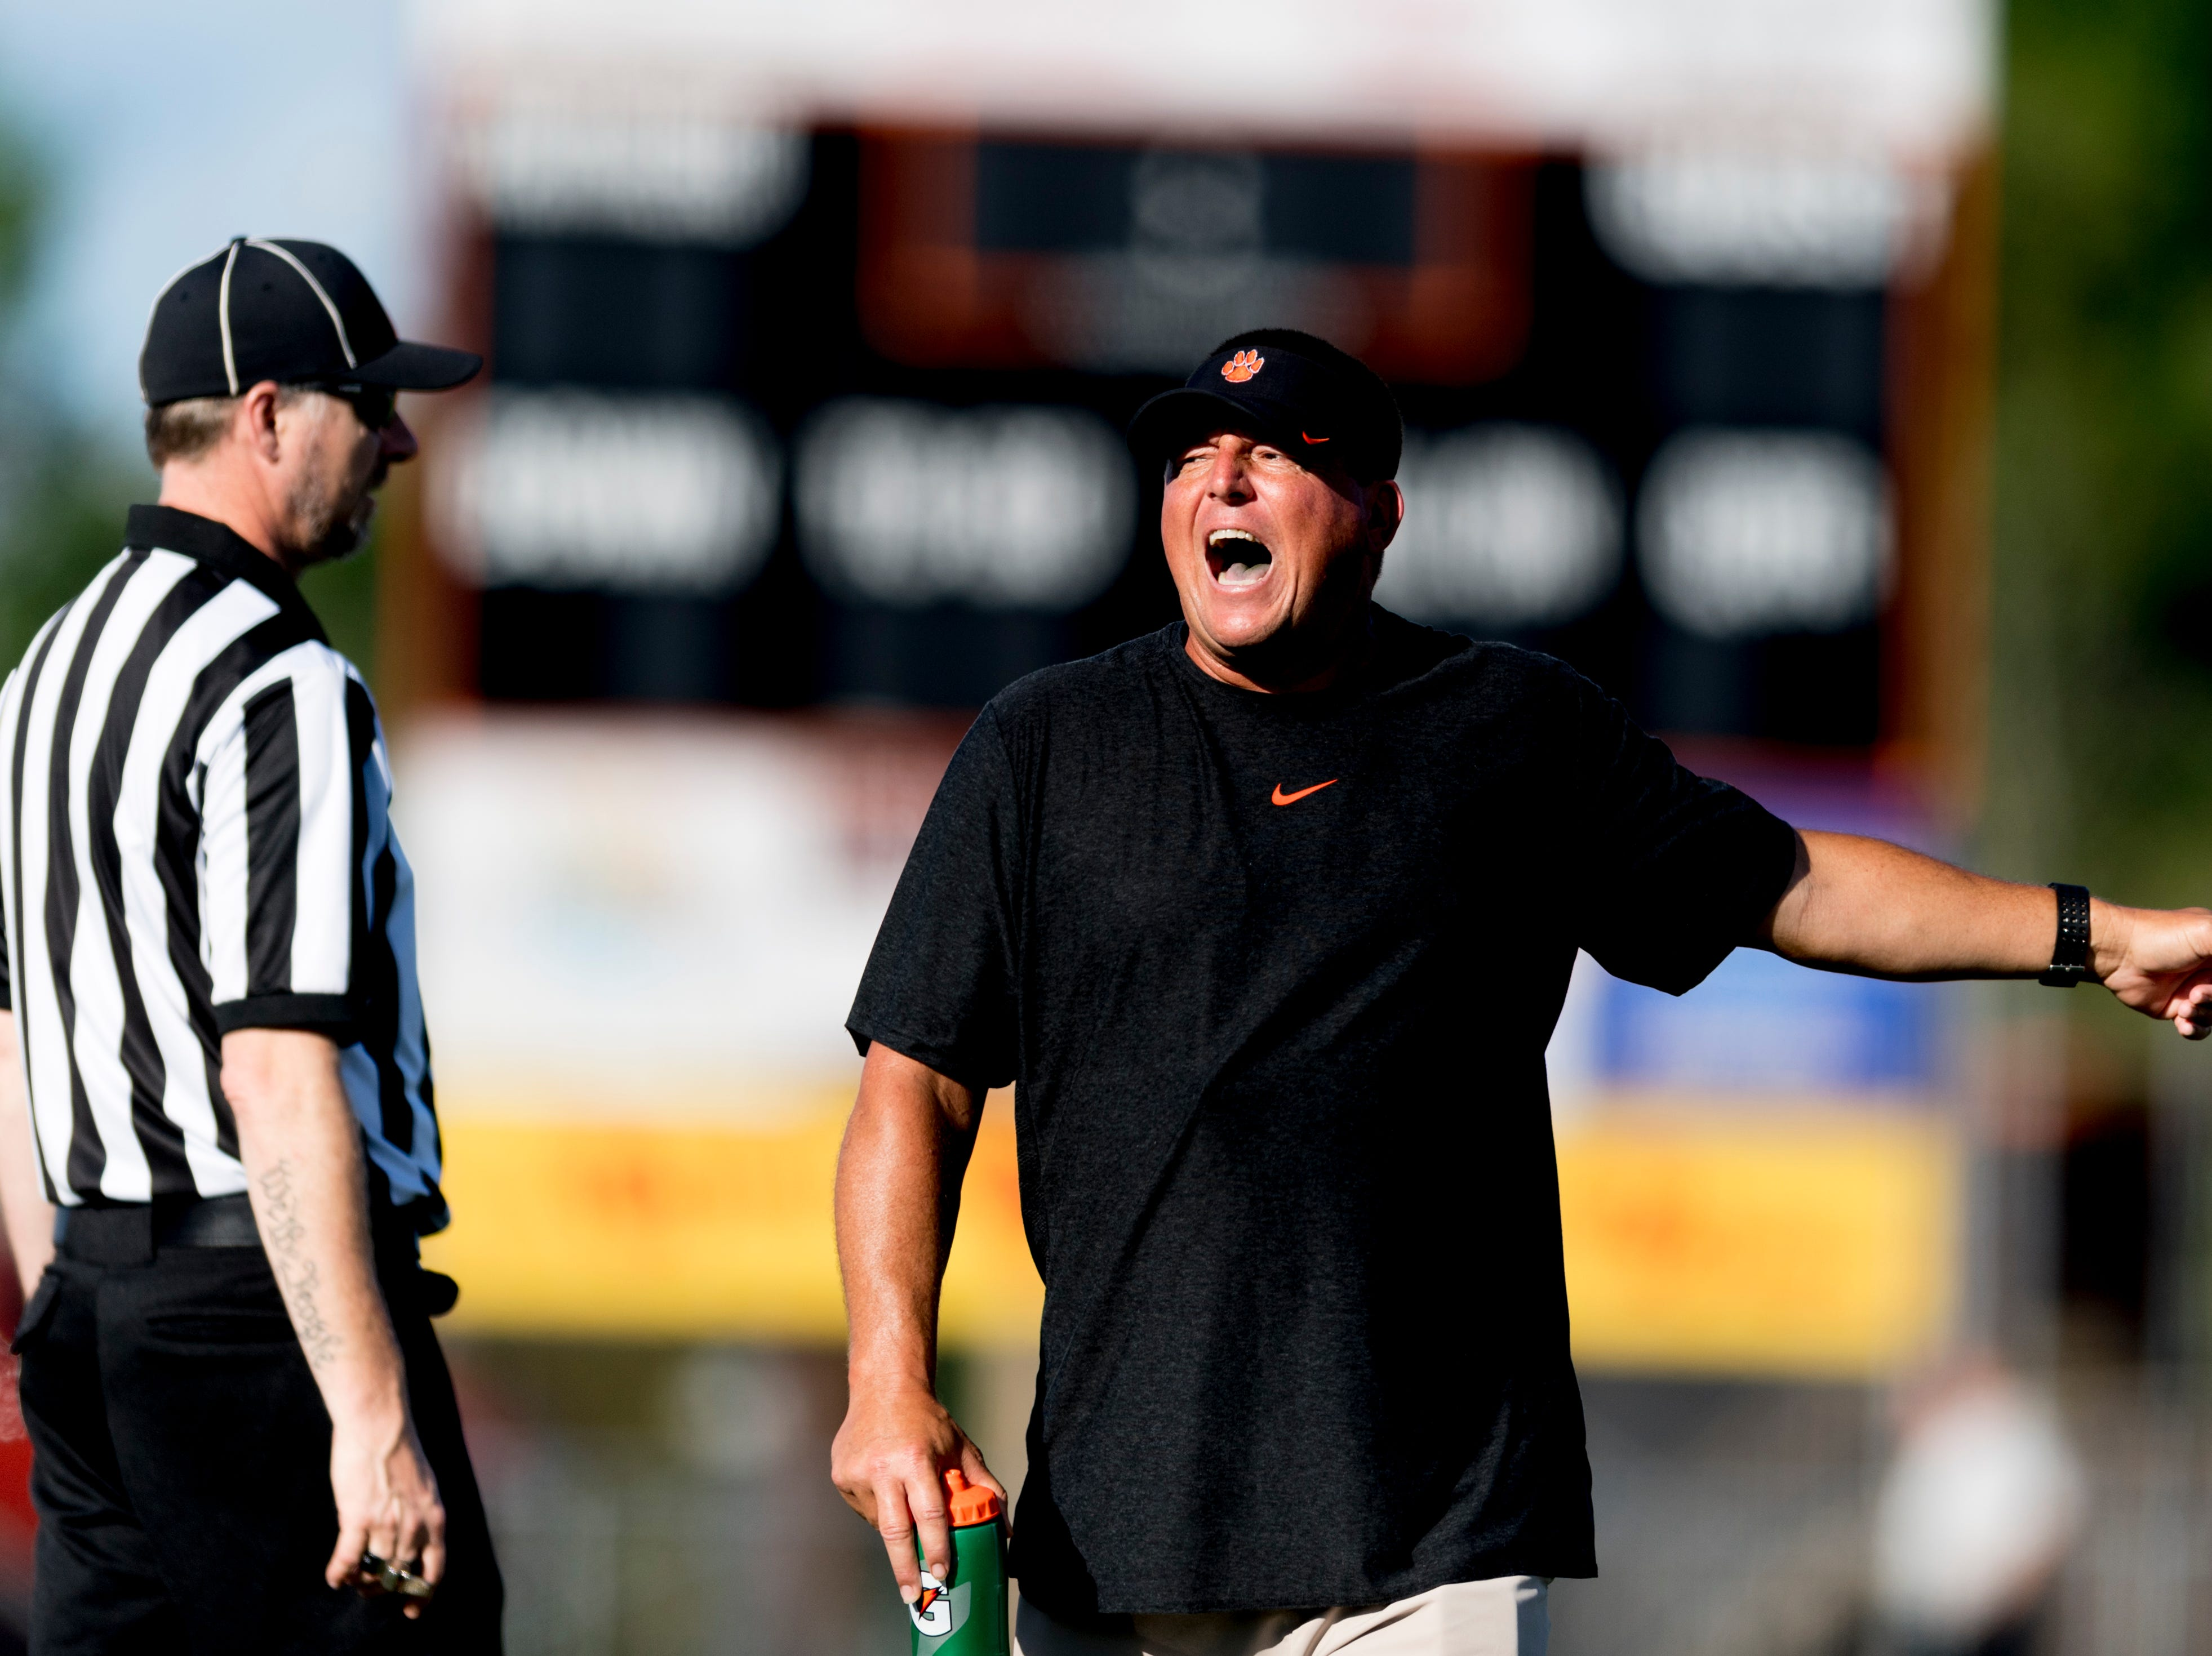 Powell Head Coach Matt Lowe calls during a scrimmage game between Powell and Carter at Powell High School in Powell, Tennessee on Friday, August 3, 2018.